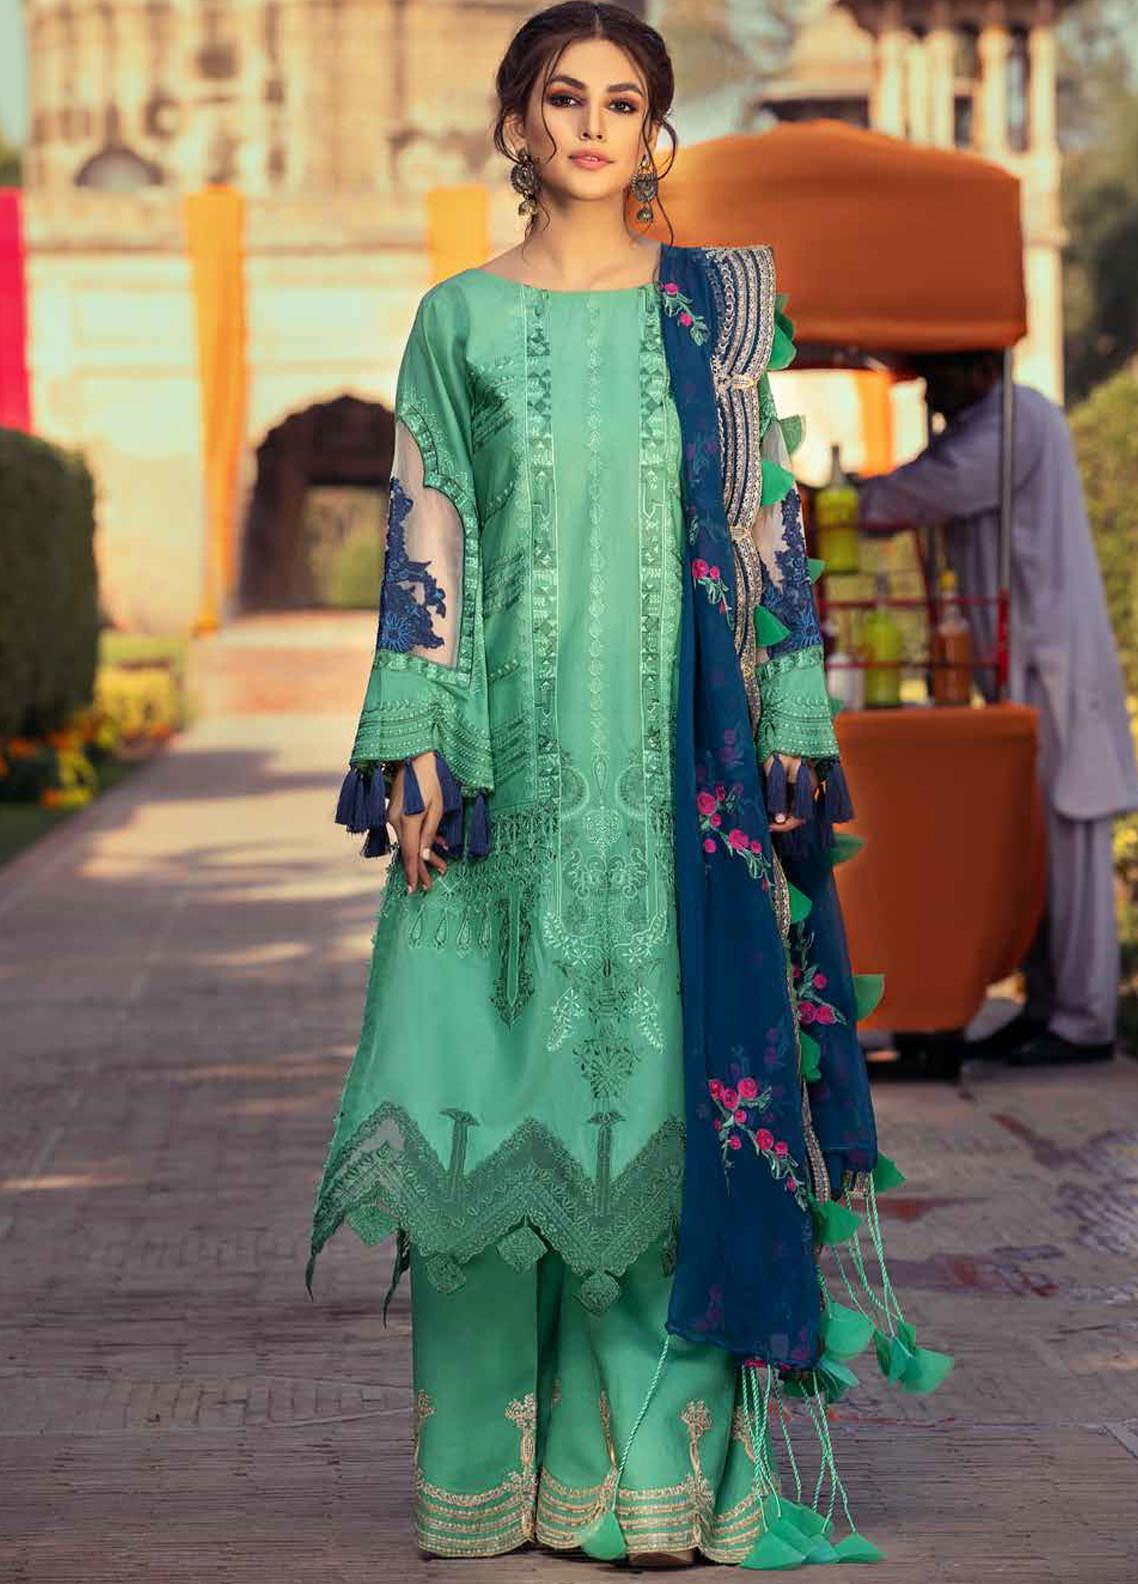 Gulzar By Charizma Embroidered Lawn Suits Unstitched 3 Piece CRZ21G 09 Shine Away - Summer Collection